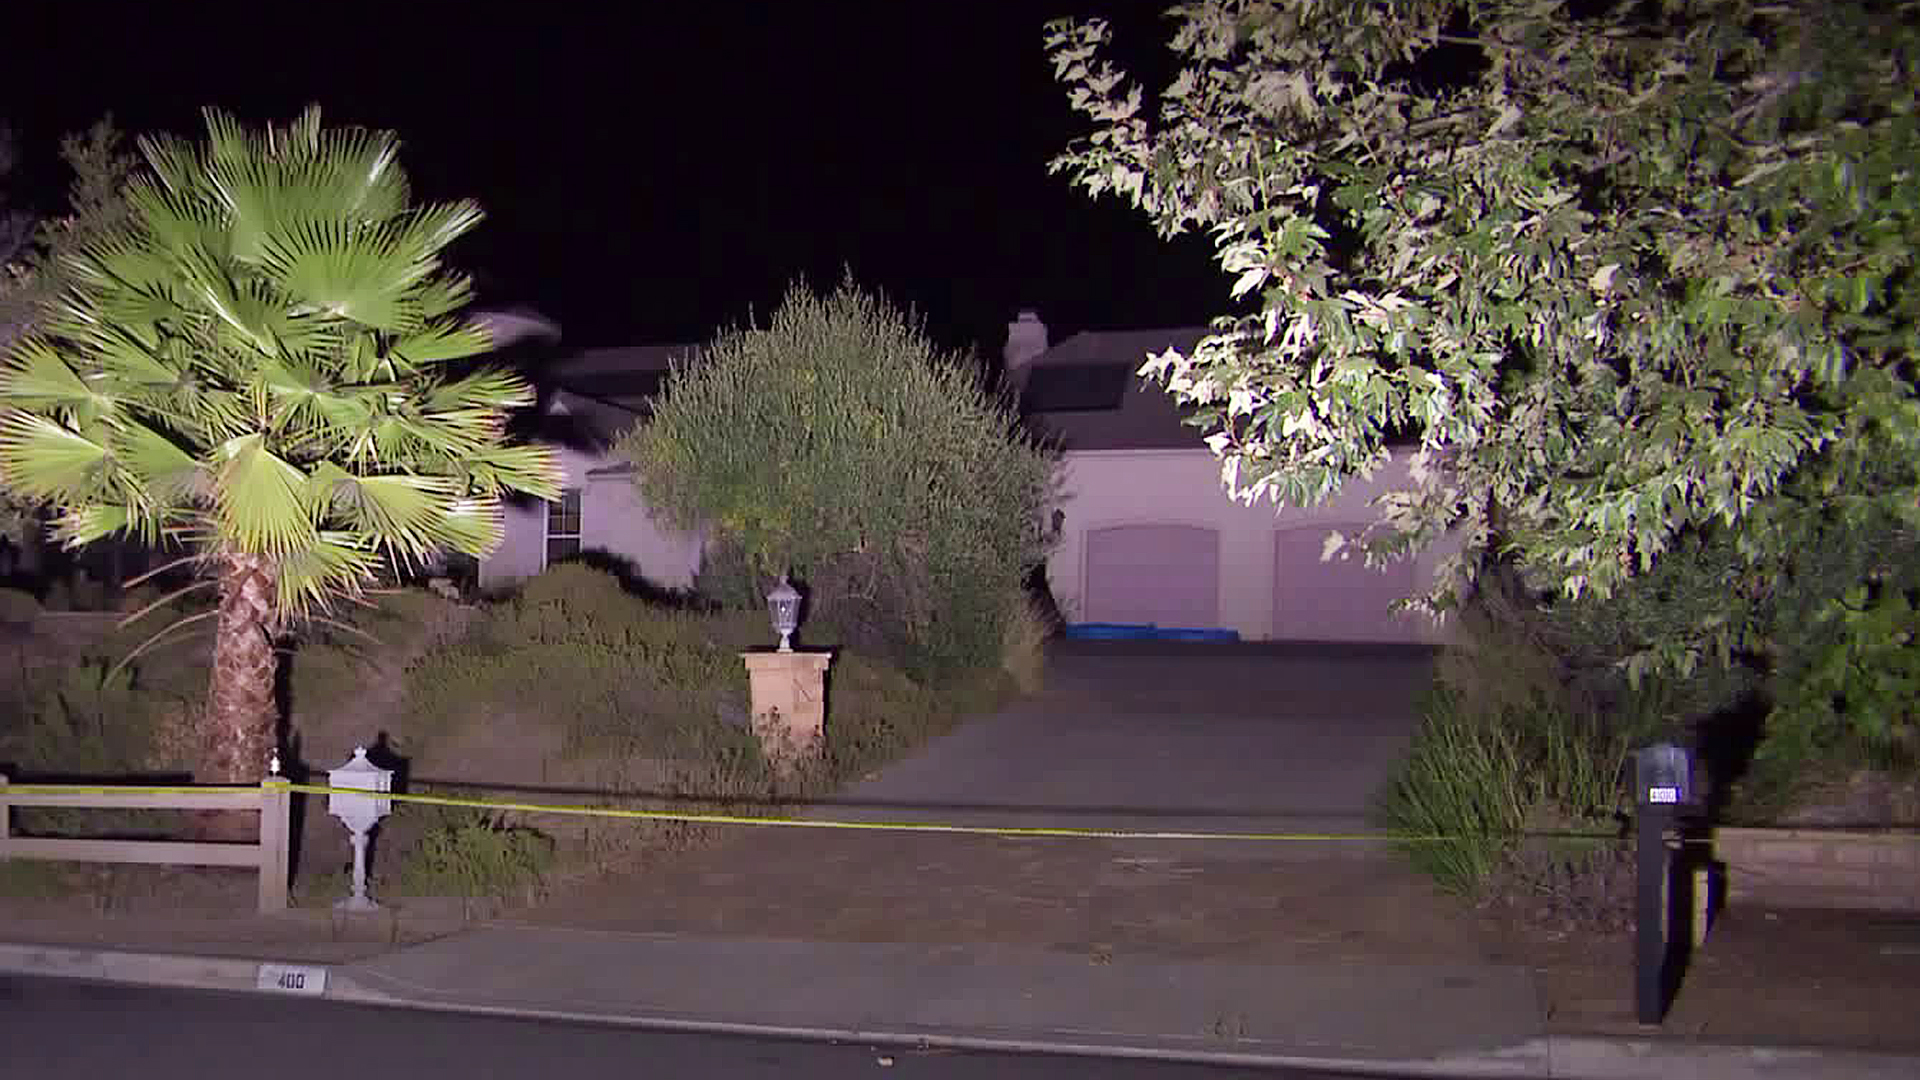 A hazmat crew was called to a home in Newbury Park on Sept. 3, 2019. (Credit: KTLA)